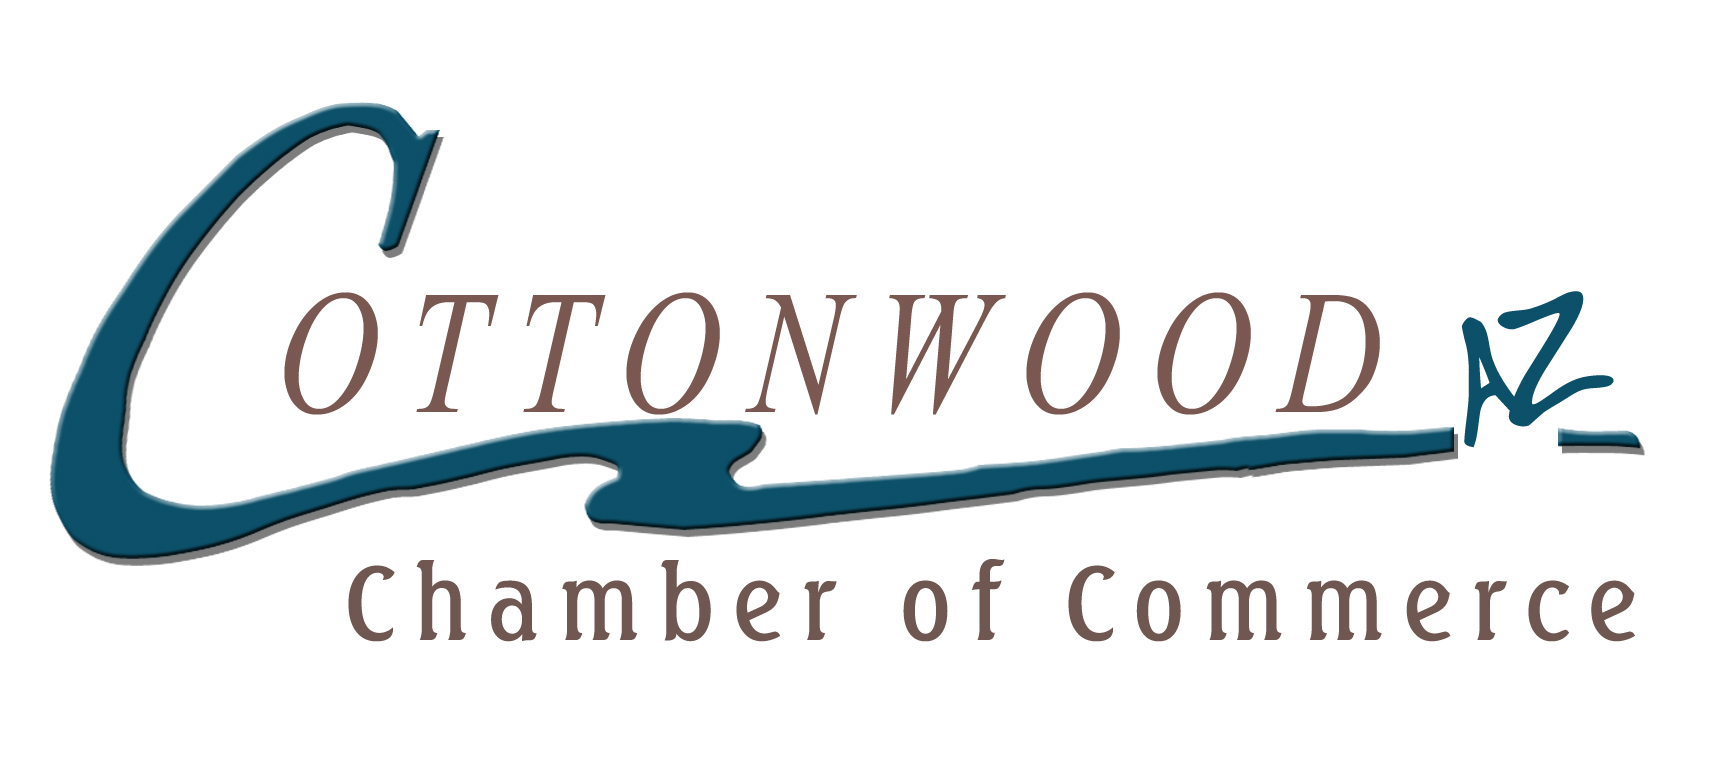 Cottonwood_Chamber_of_Commerce_Arizona